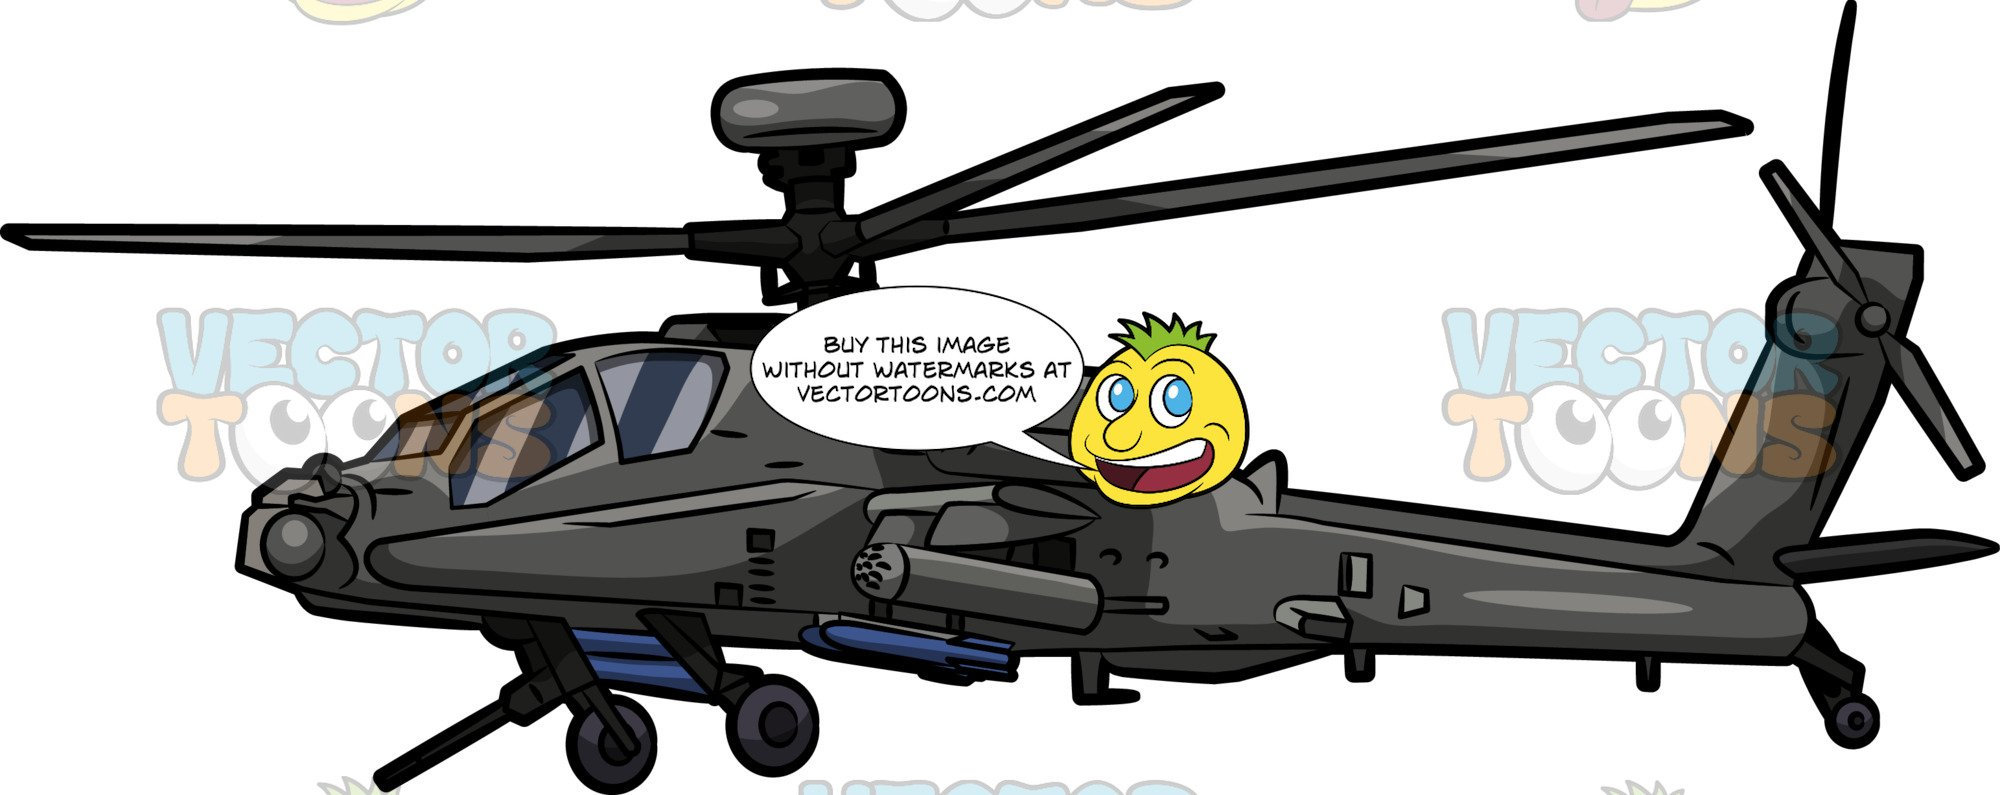 Helicopter clipart apache. A boeing ah